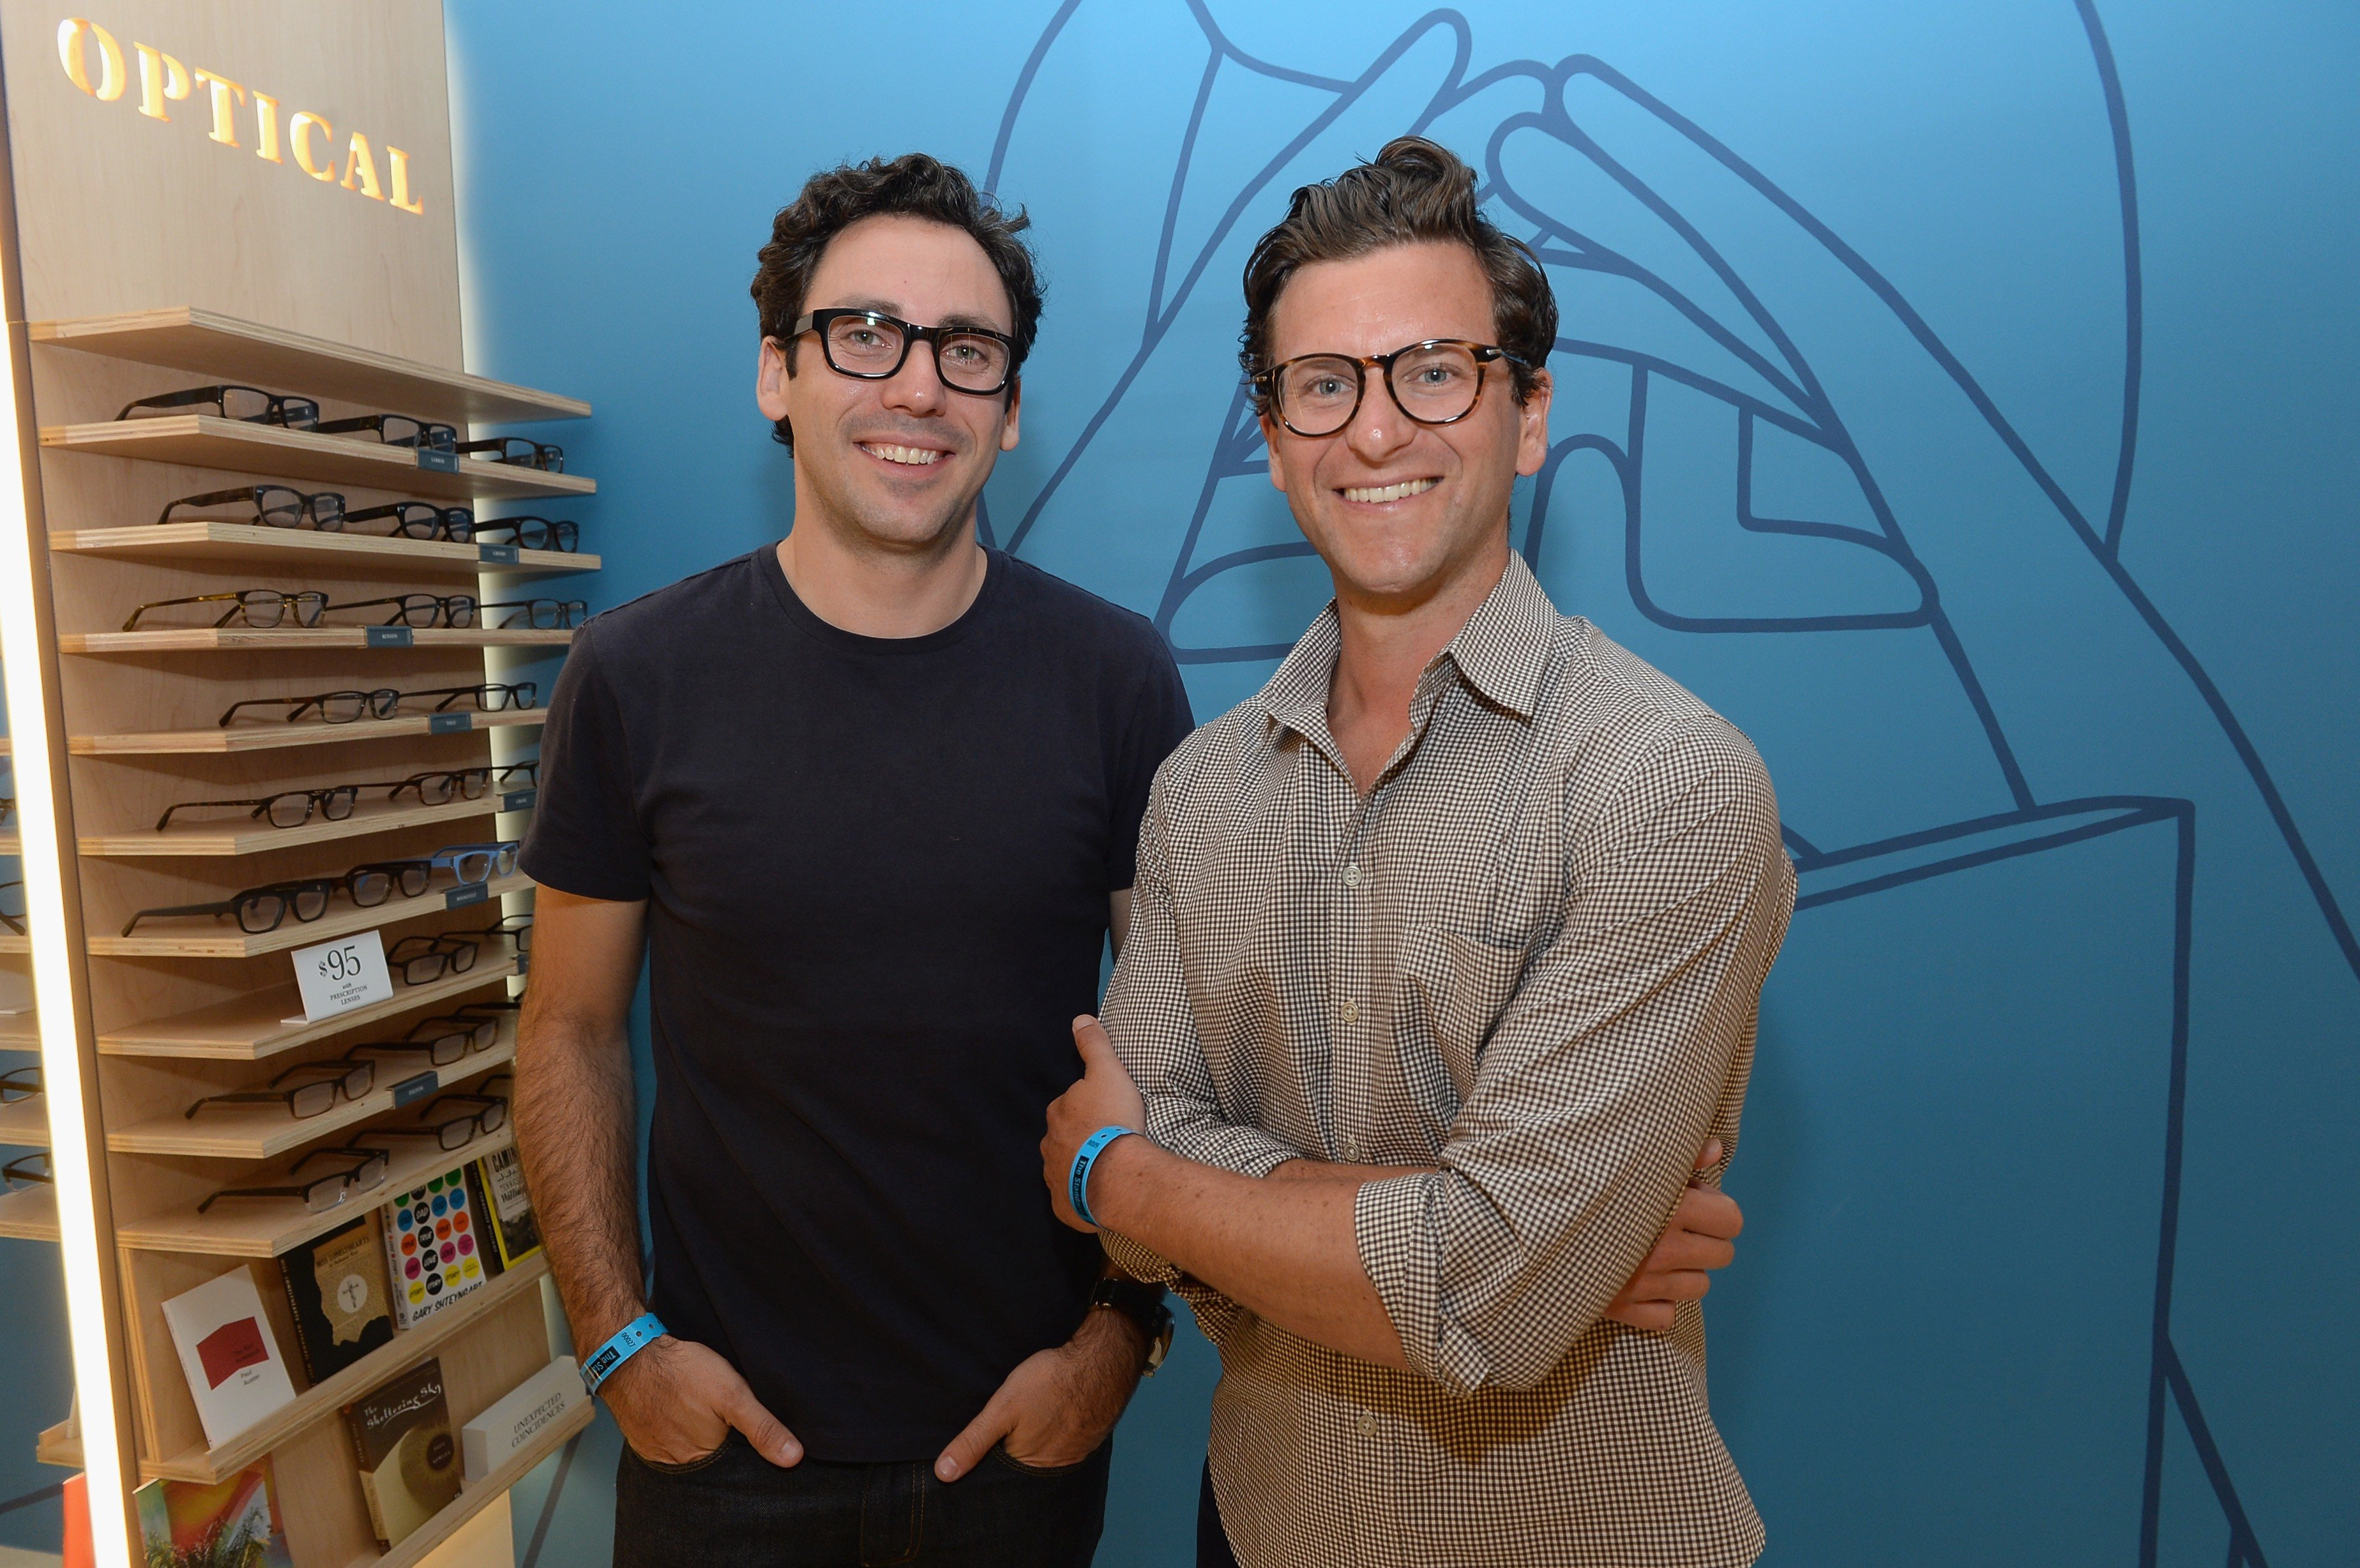 Photo: Warby Parker co-founders and co-CEOs Neil Blumenthal and Dave Gilboa. Photo: Michael Buckner/Getty Images